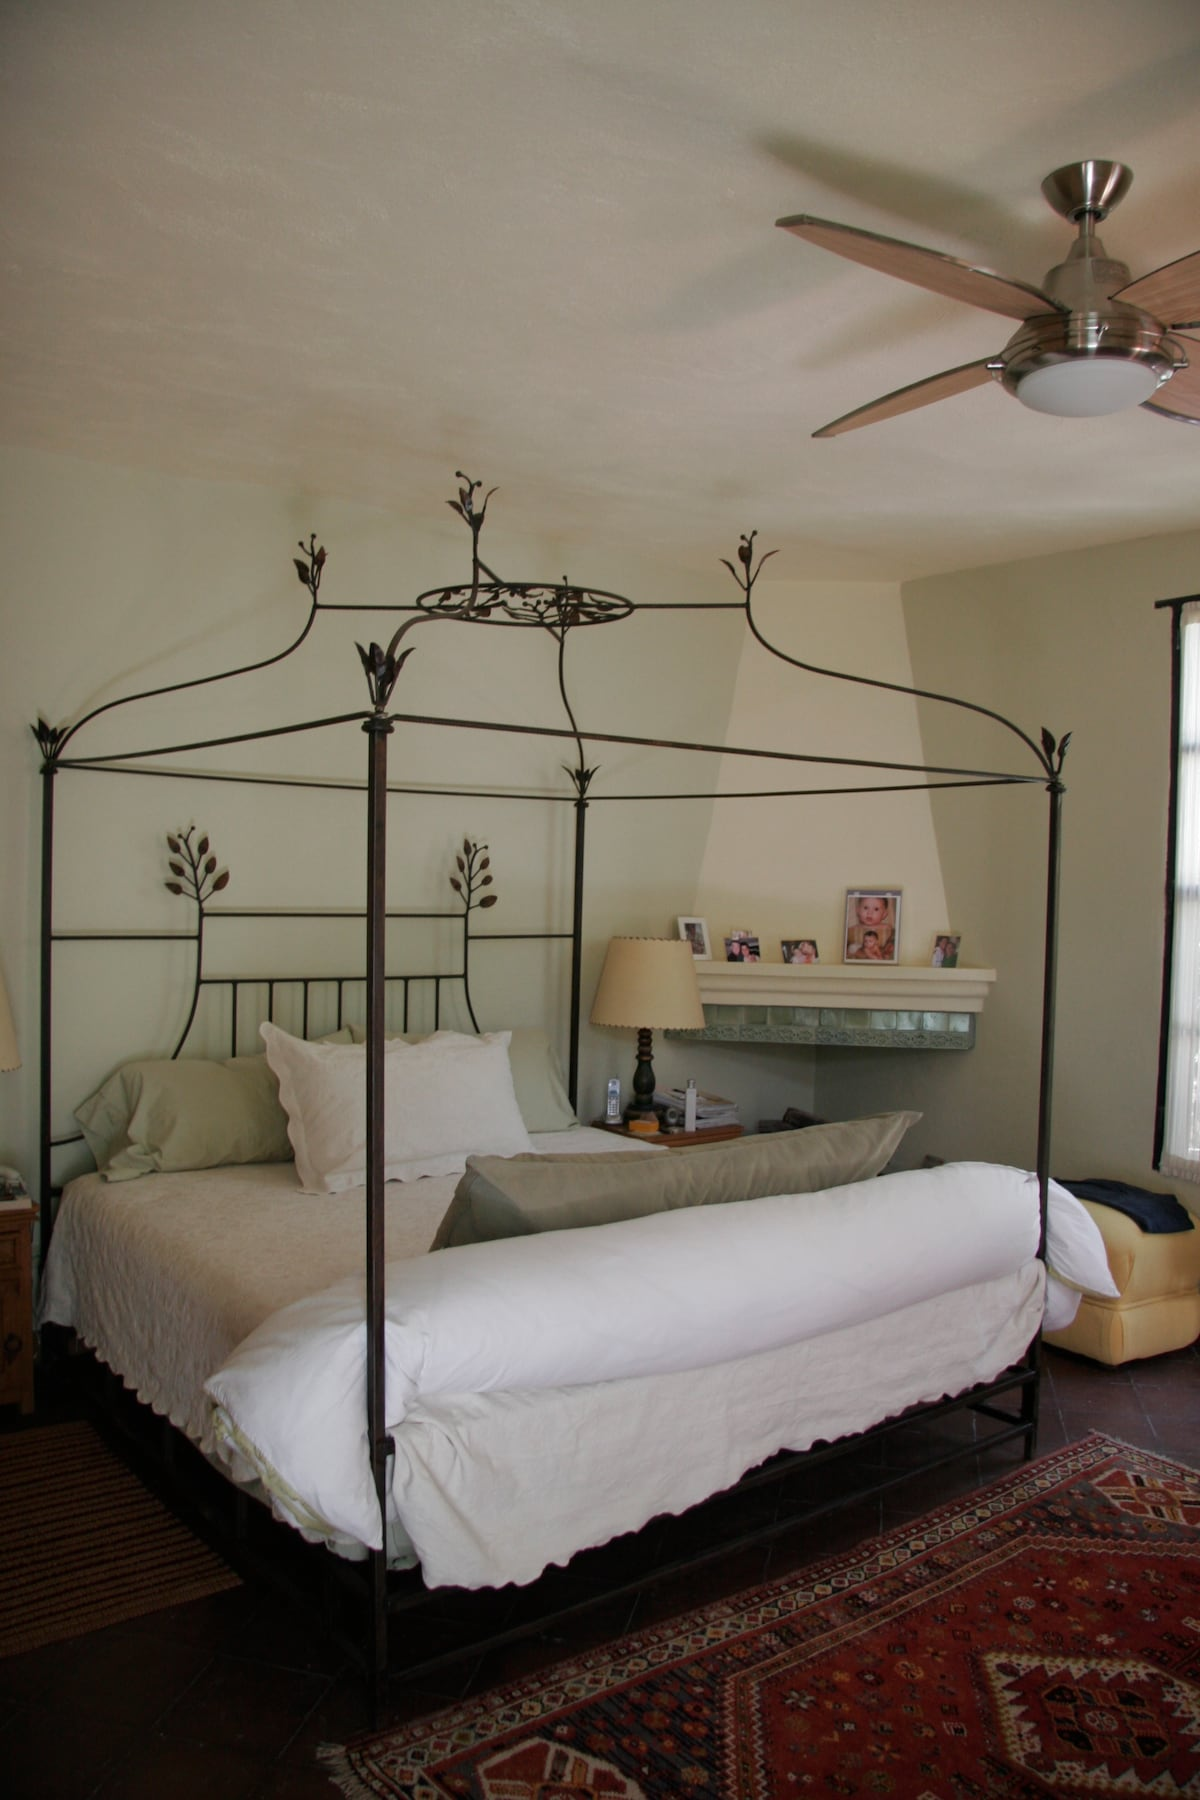 The master bedroom canopy bed...